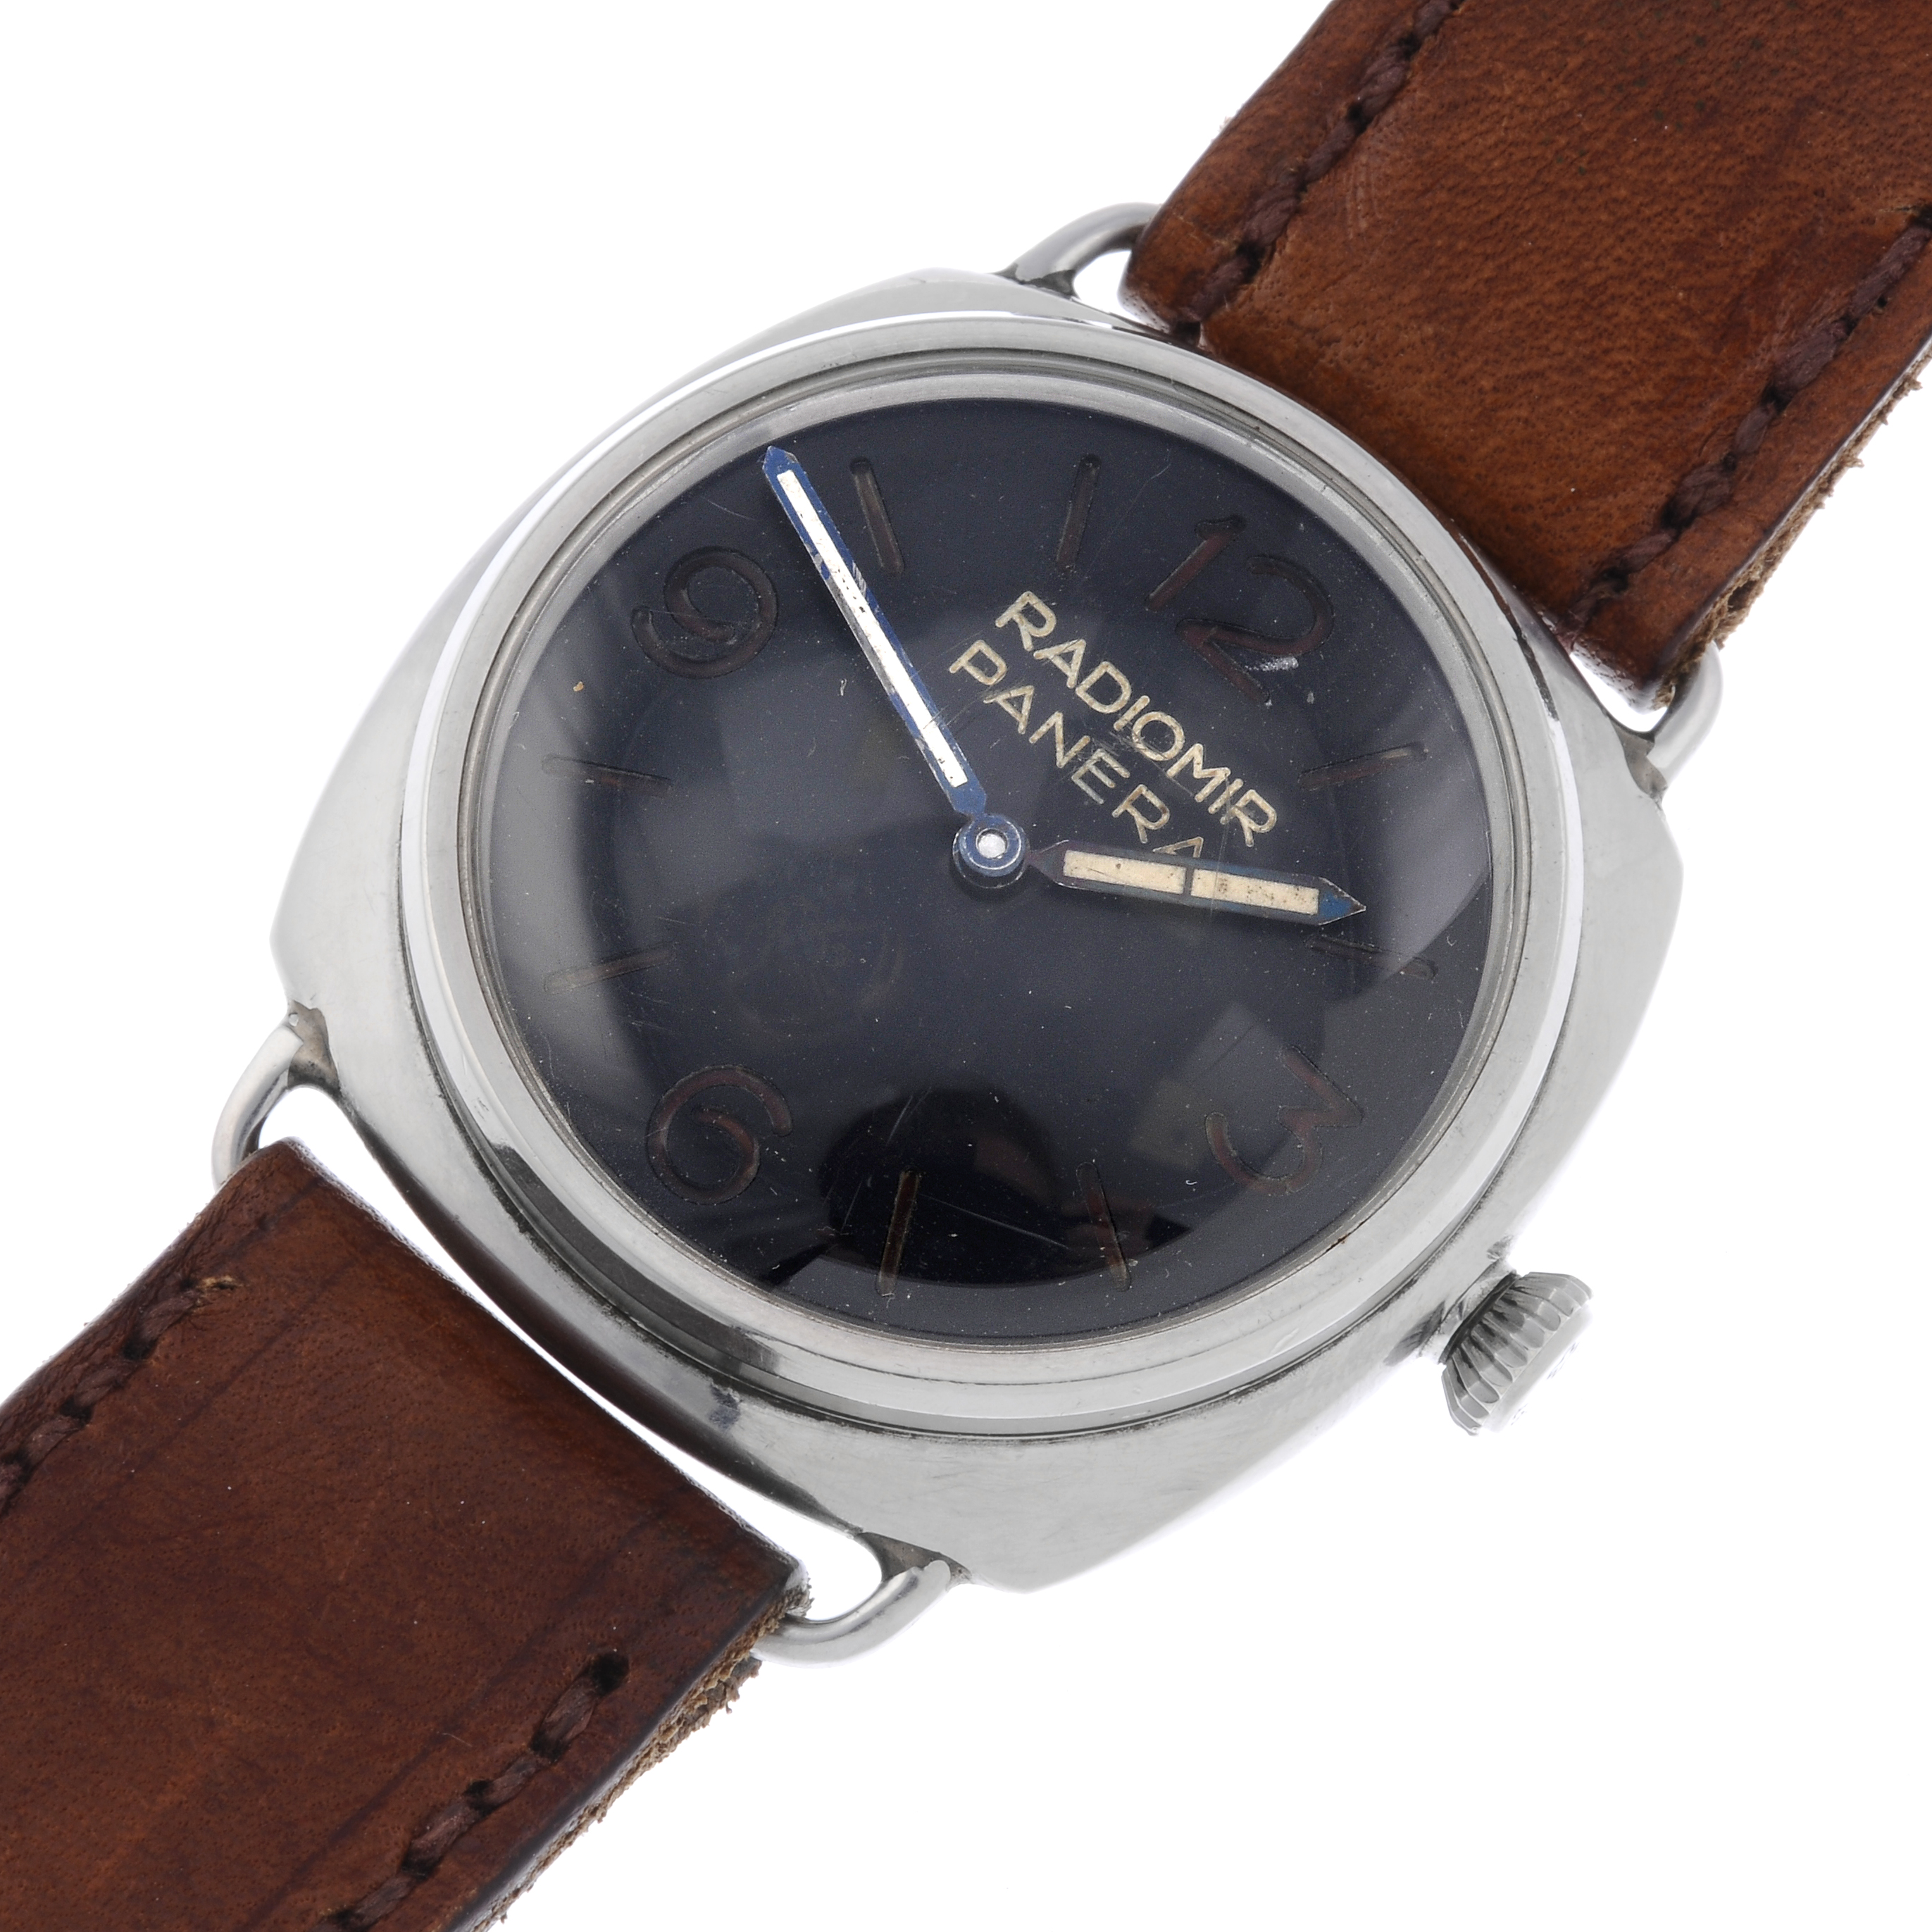 panerai uk buy watches all logo image on acciaio london base sale brand luminor in